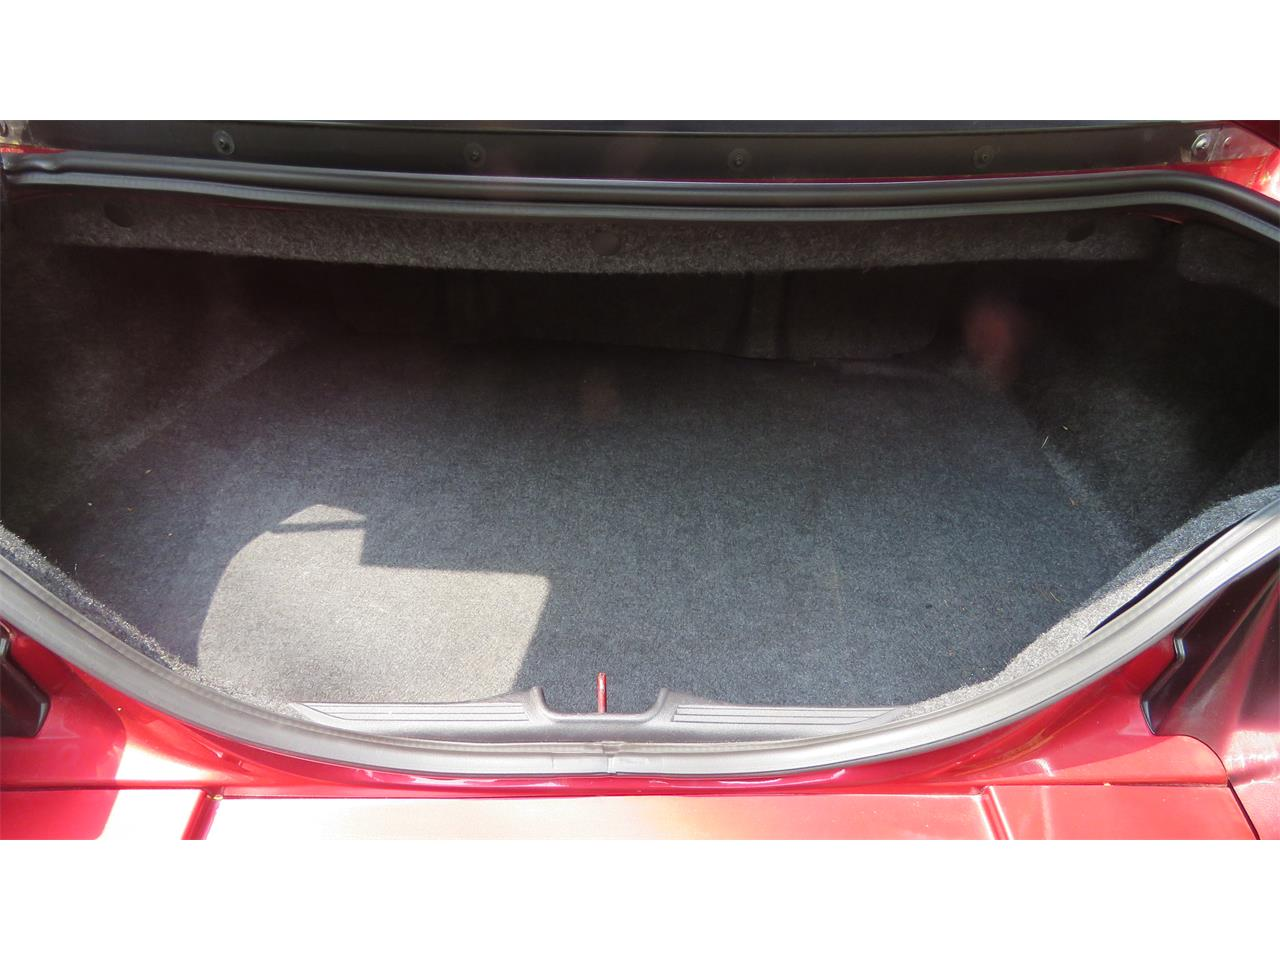 Large Picture of 2004 Ford Mustang SVT Cobra - $23,000.00 Offered by a Private Seller - QBSO